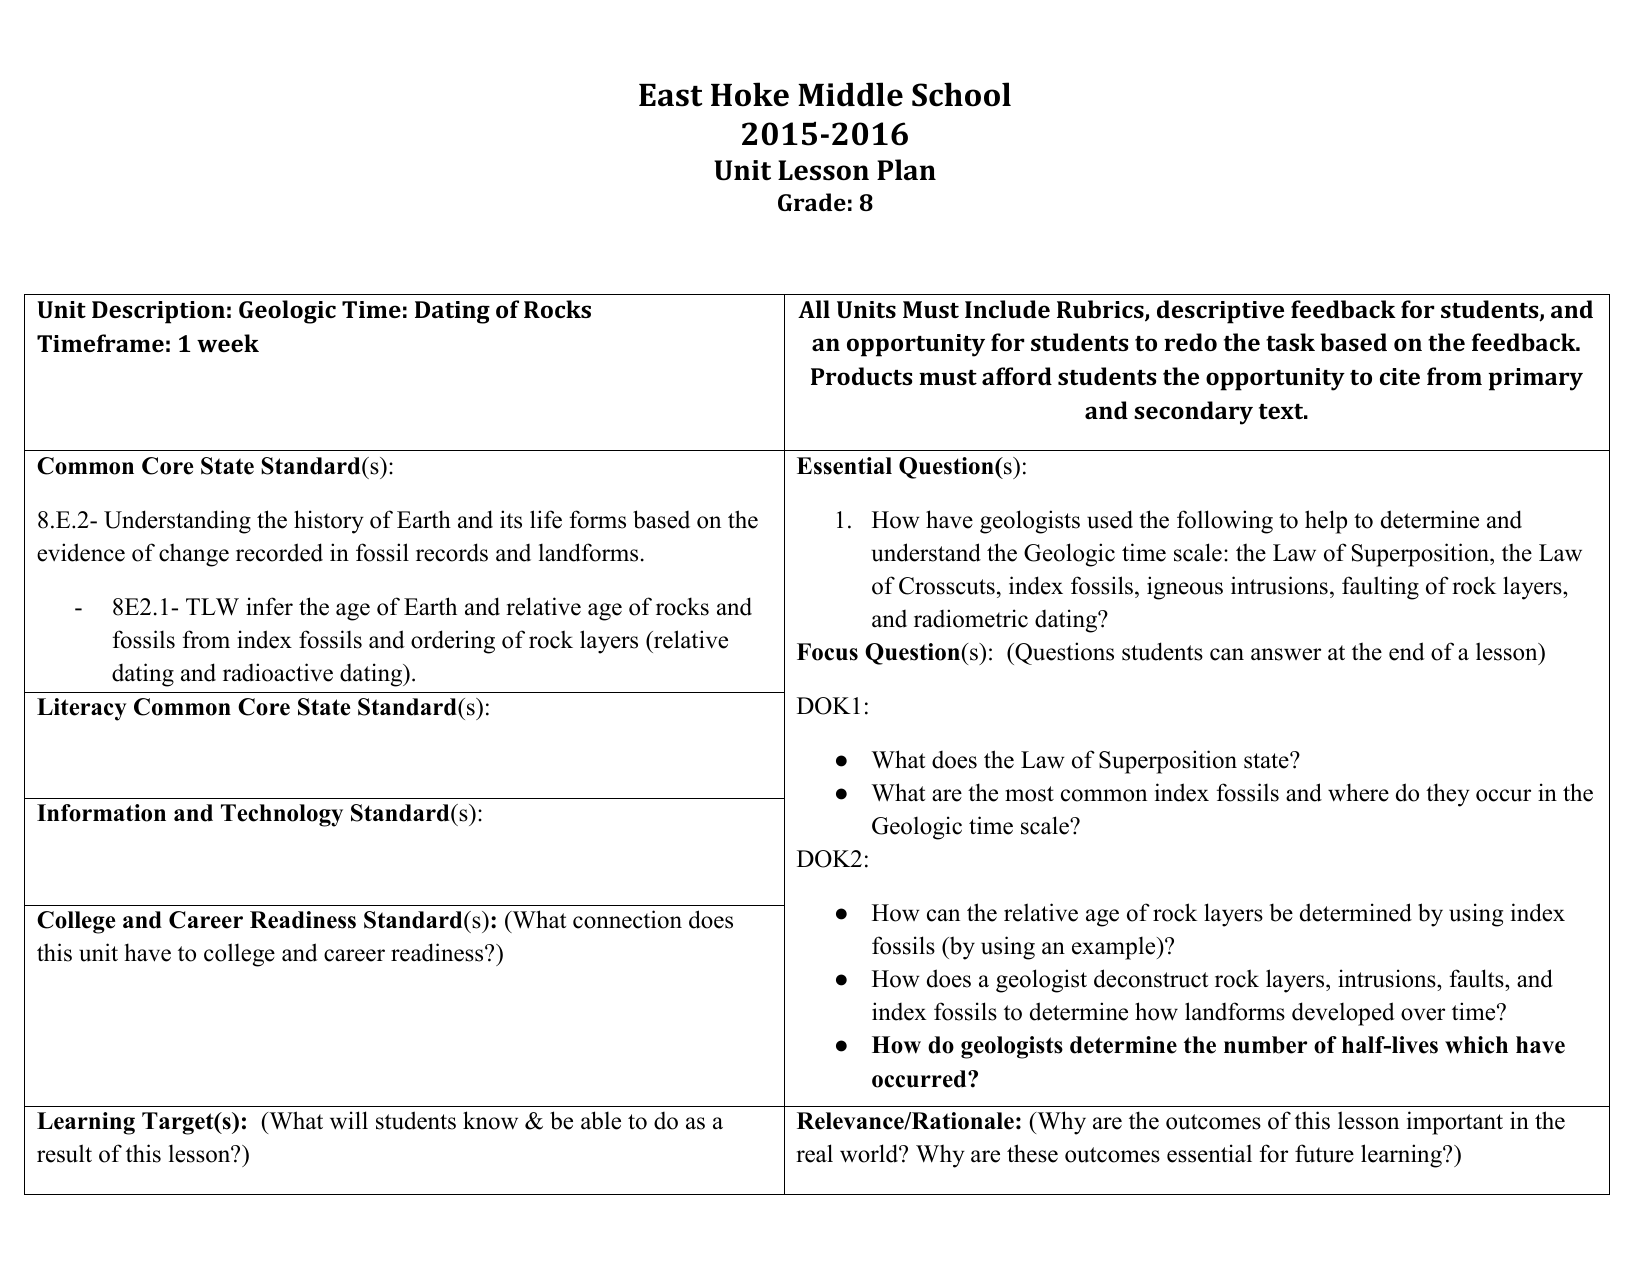 Radioactive Dating Worksheet Middle School Radioactive